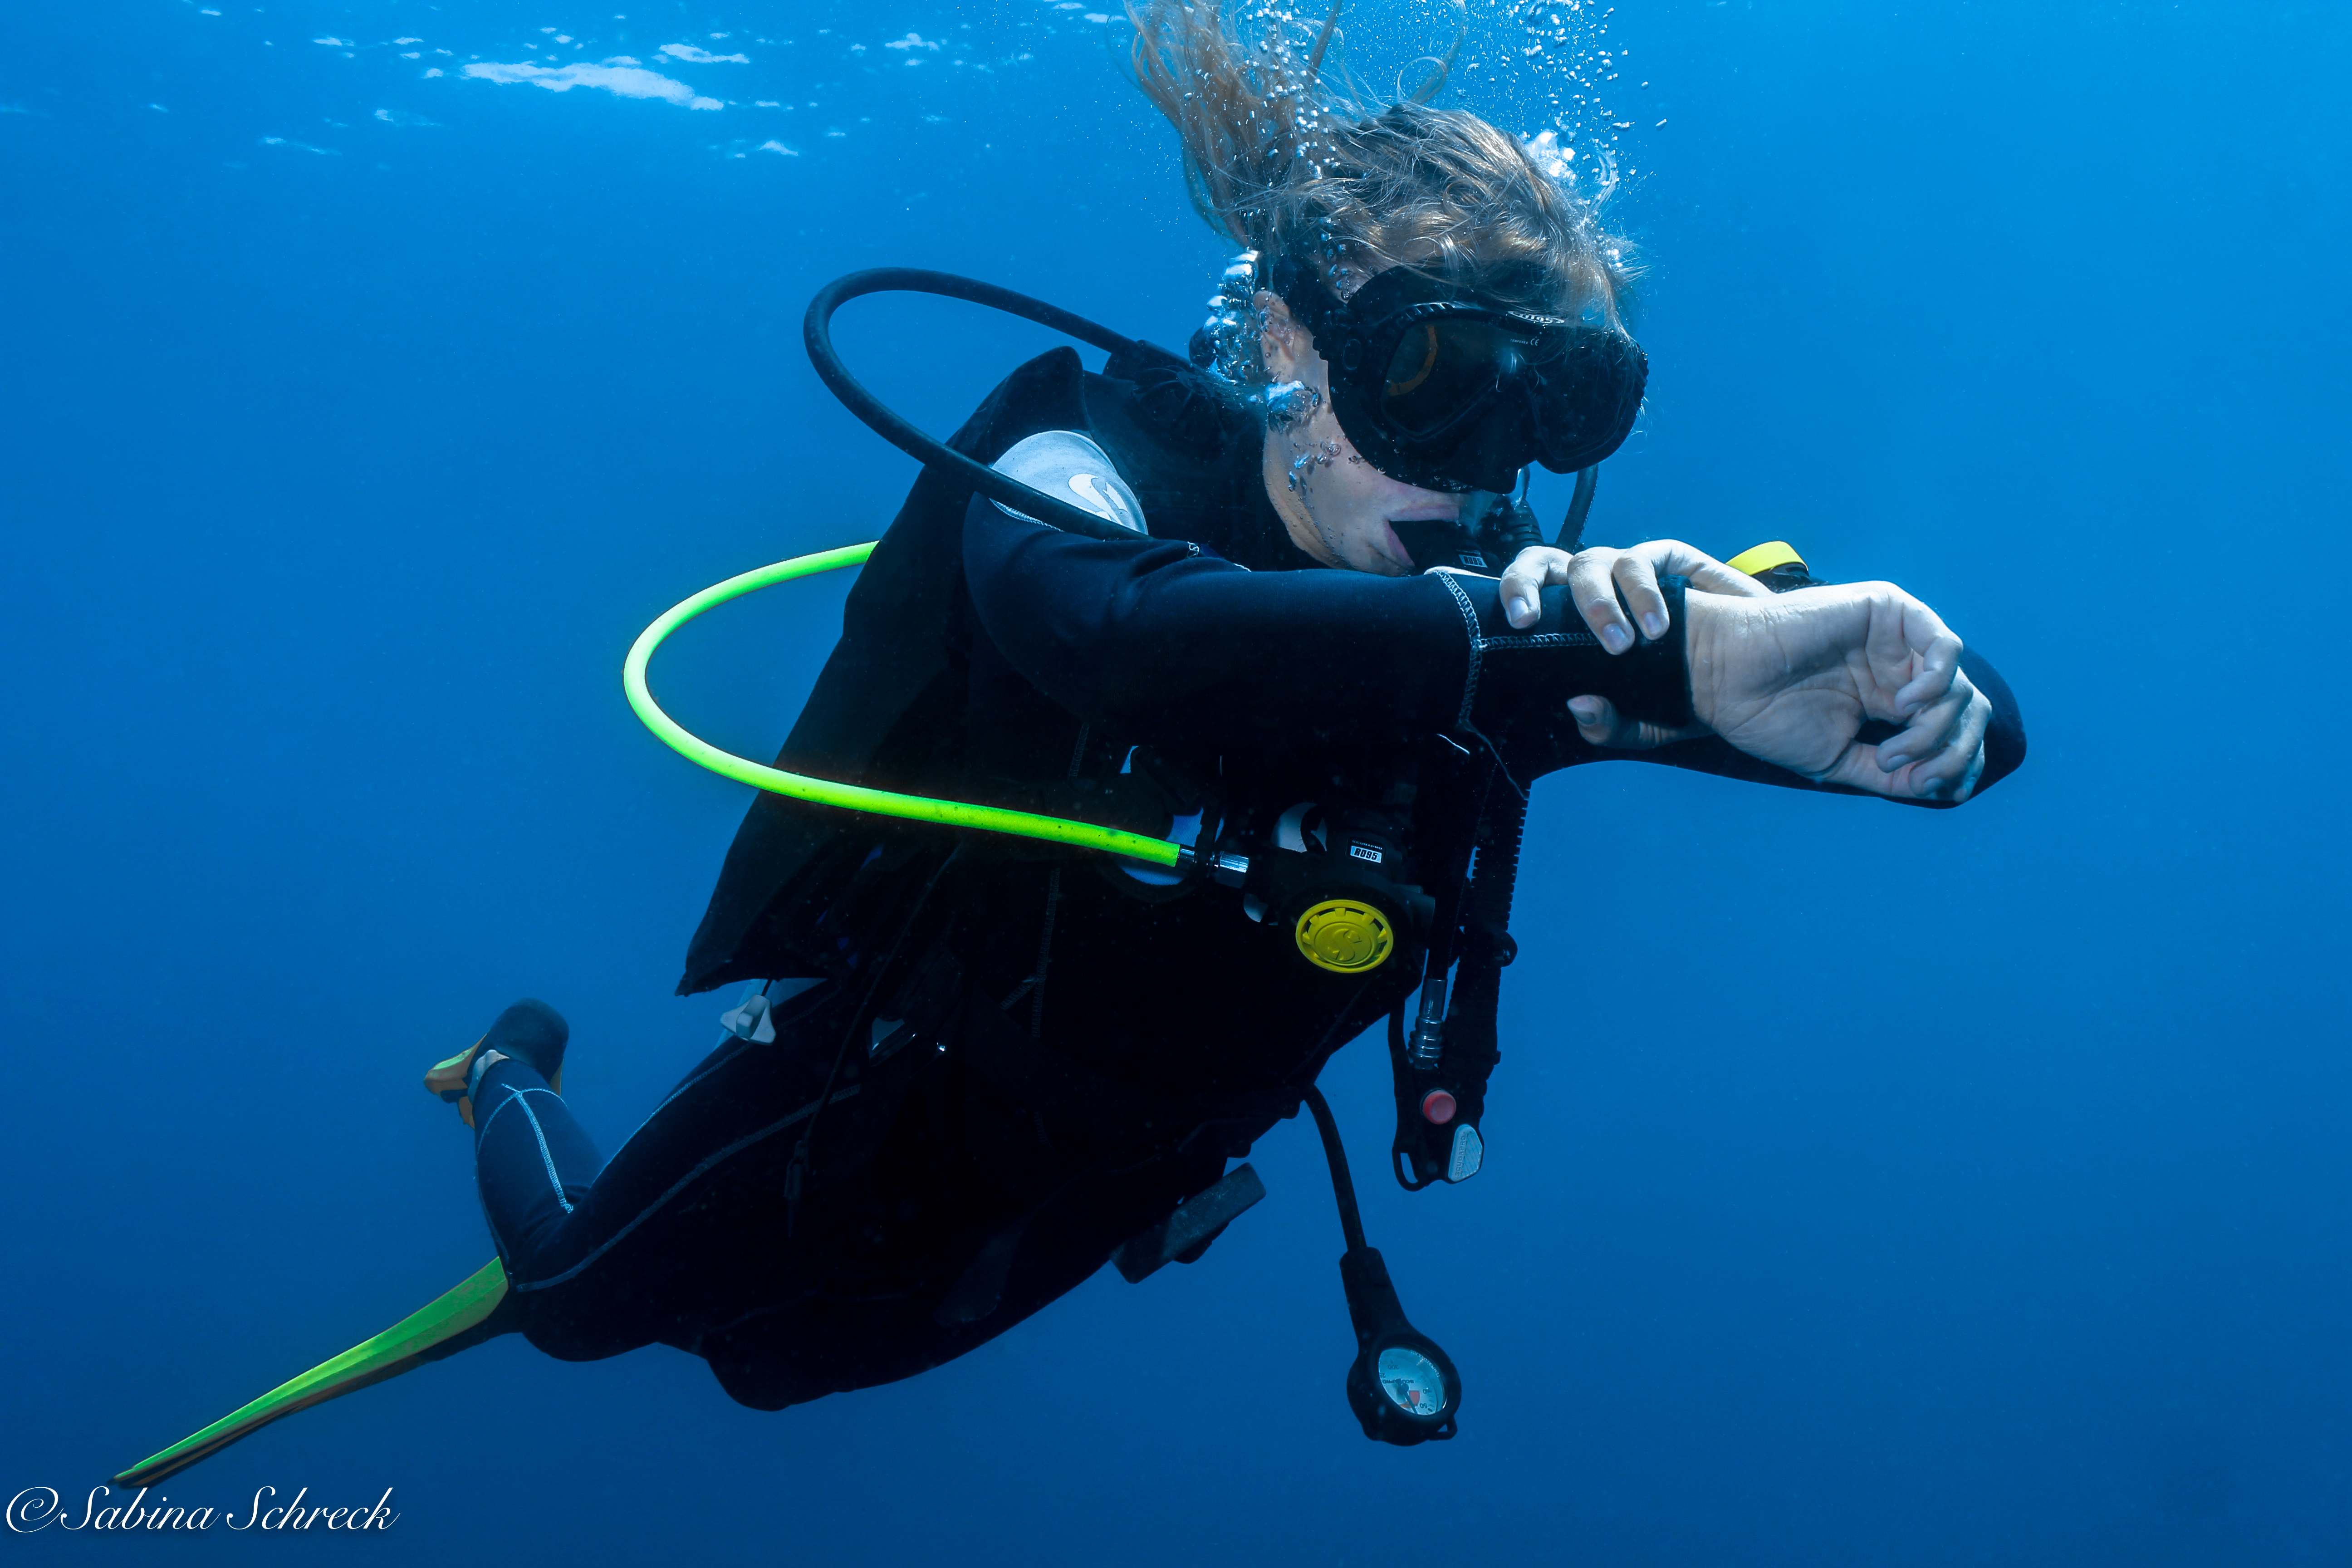 Padi dive courses in coiba santa catalina panama dive center the padi scuba diver course is a subset of the padi open water diver course if youre short on time but really want to become a diver the padi scuba diver fandeluxe Images